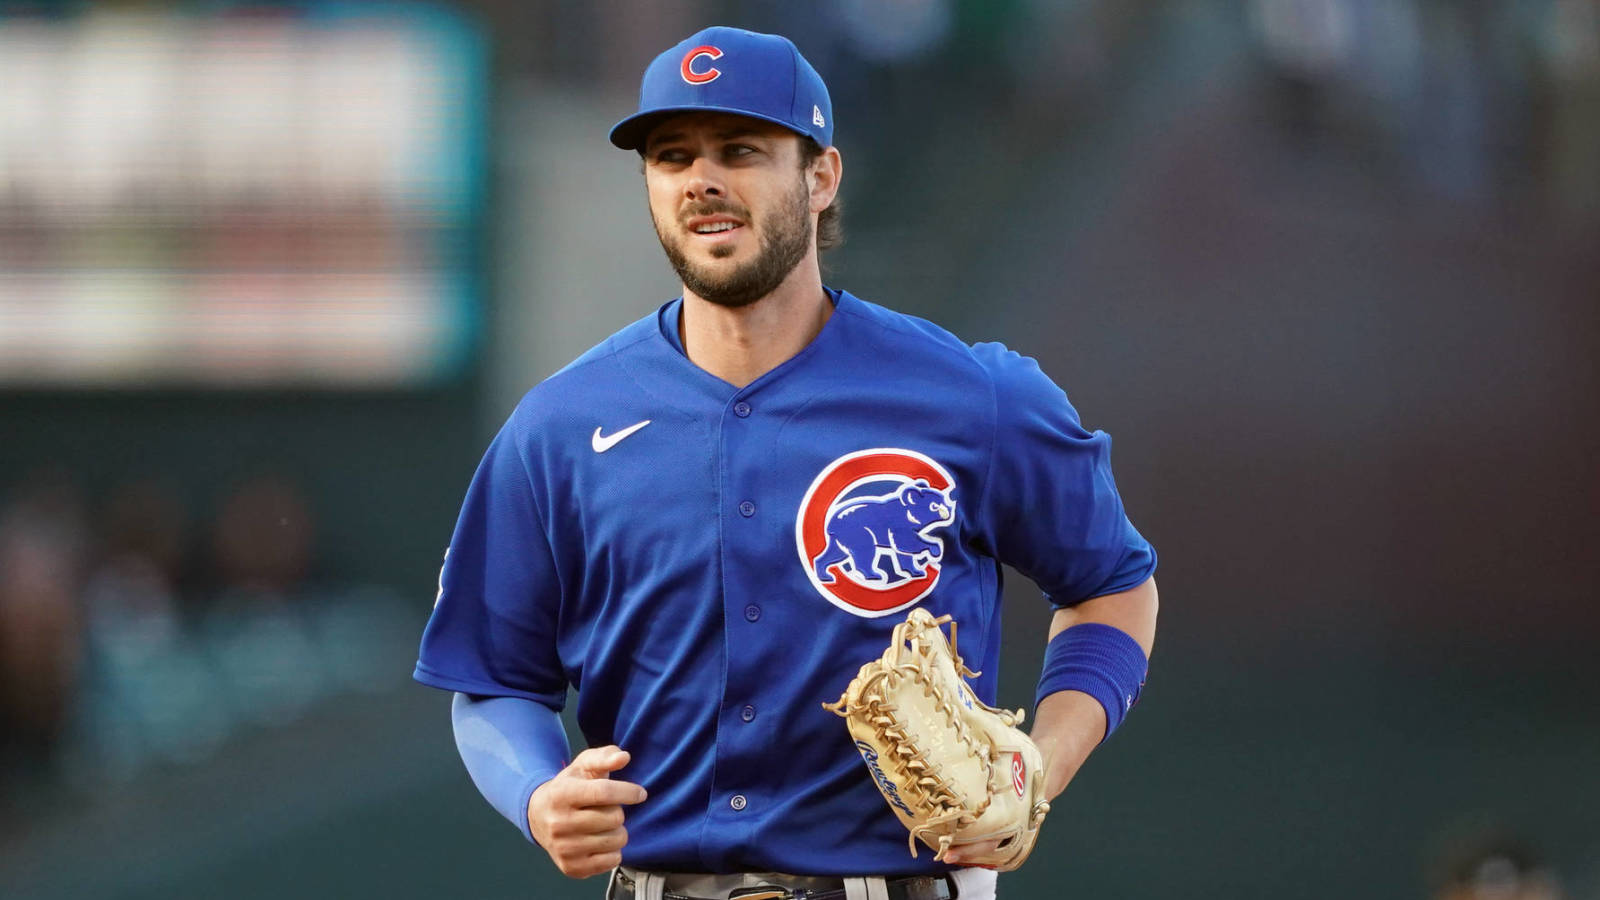 Kris Bryant happy about MLB's crackdown on foreign substances